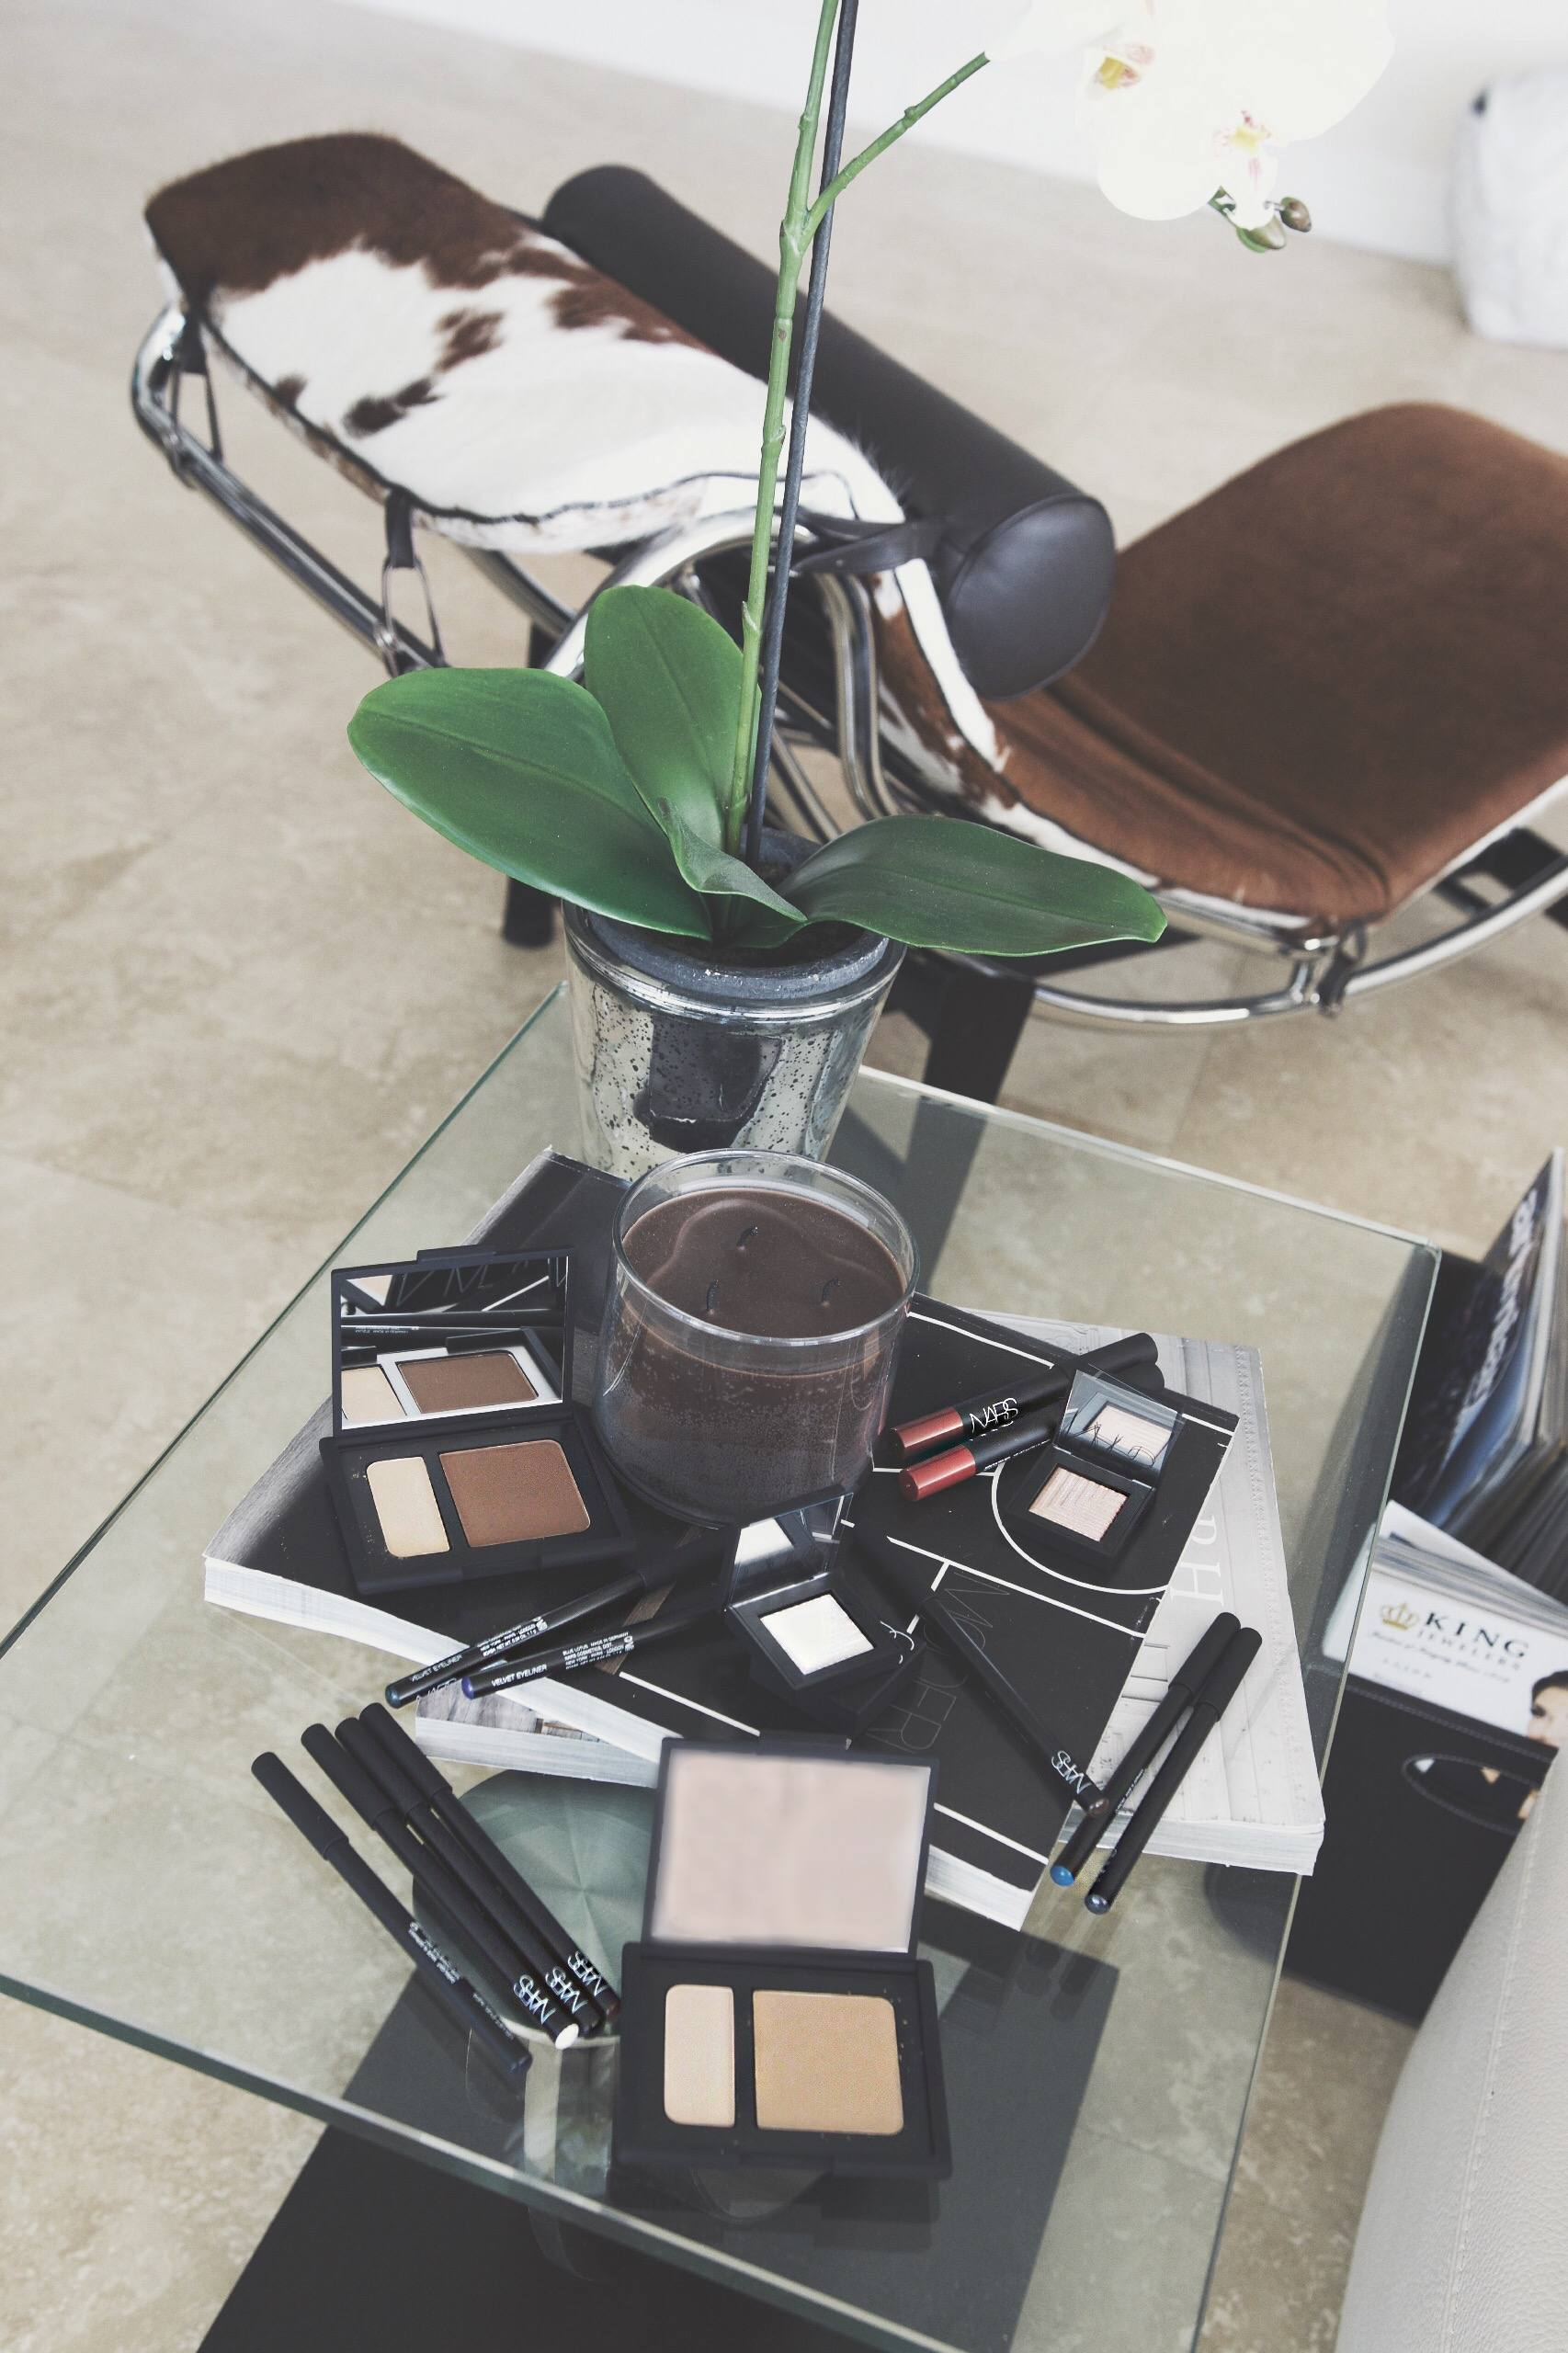 Nars makeup flatly